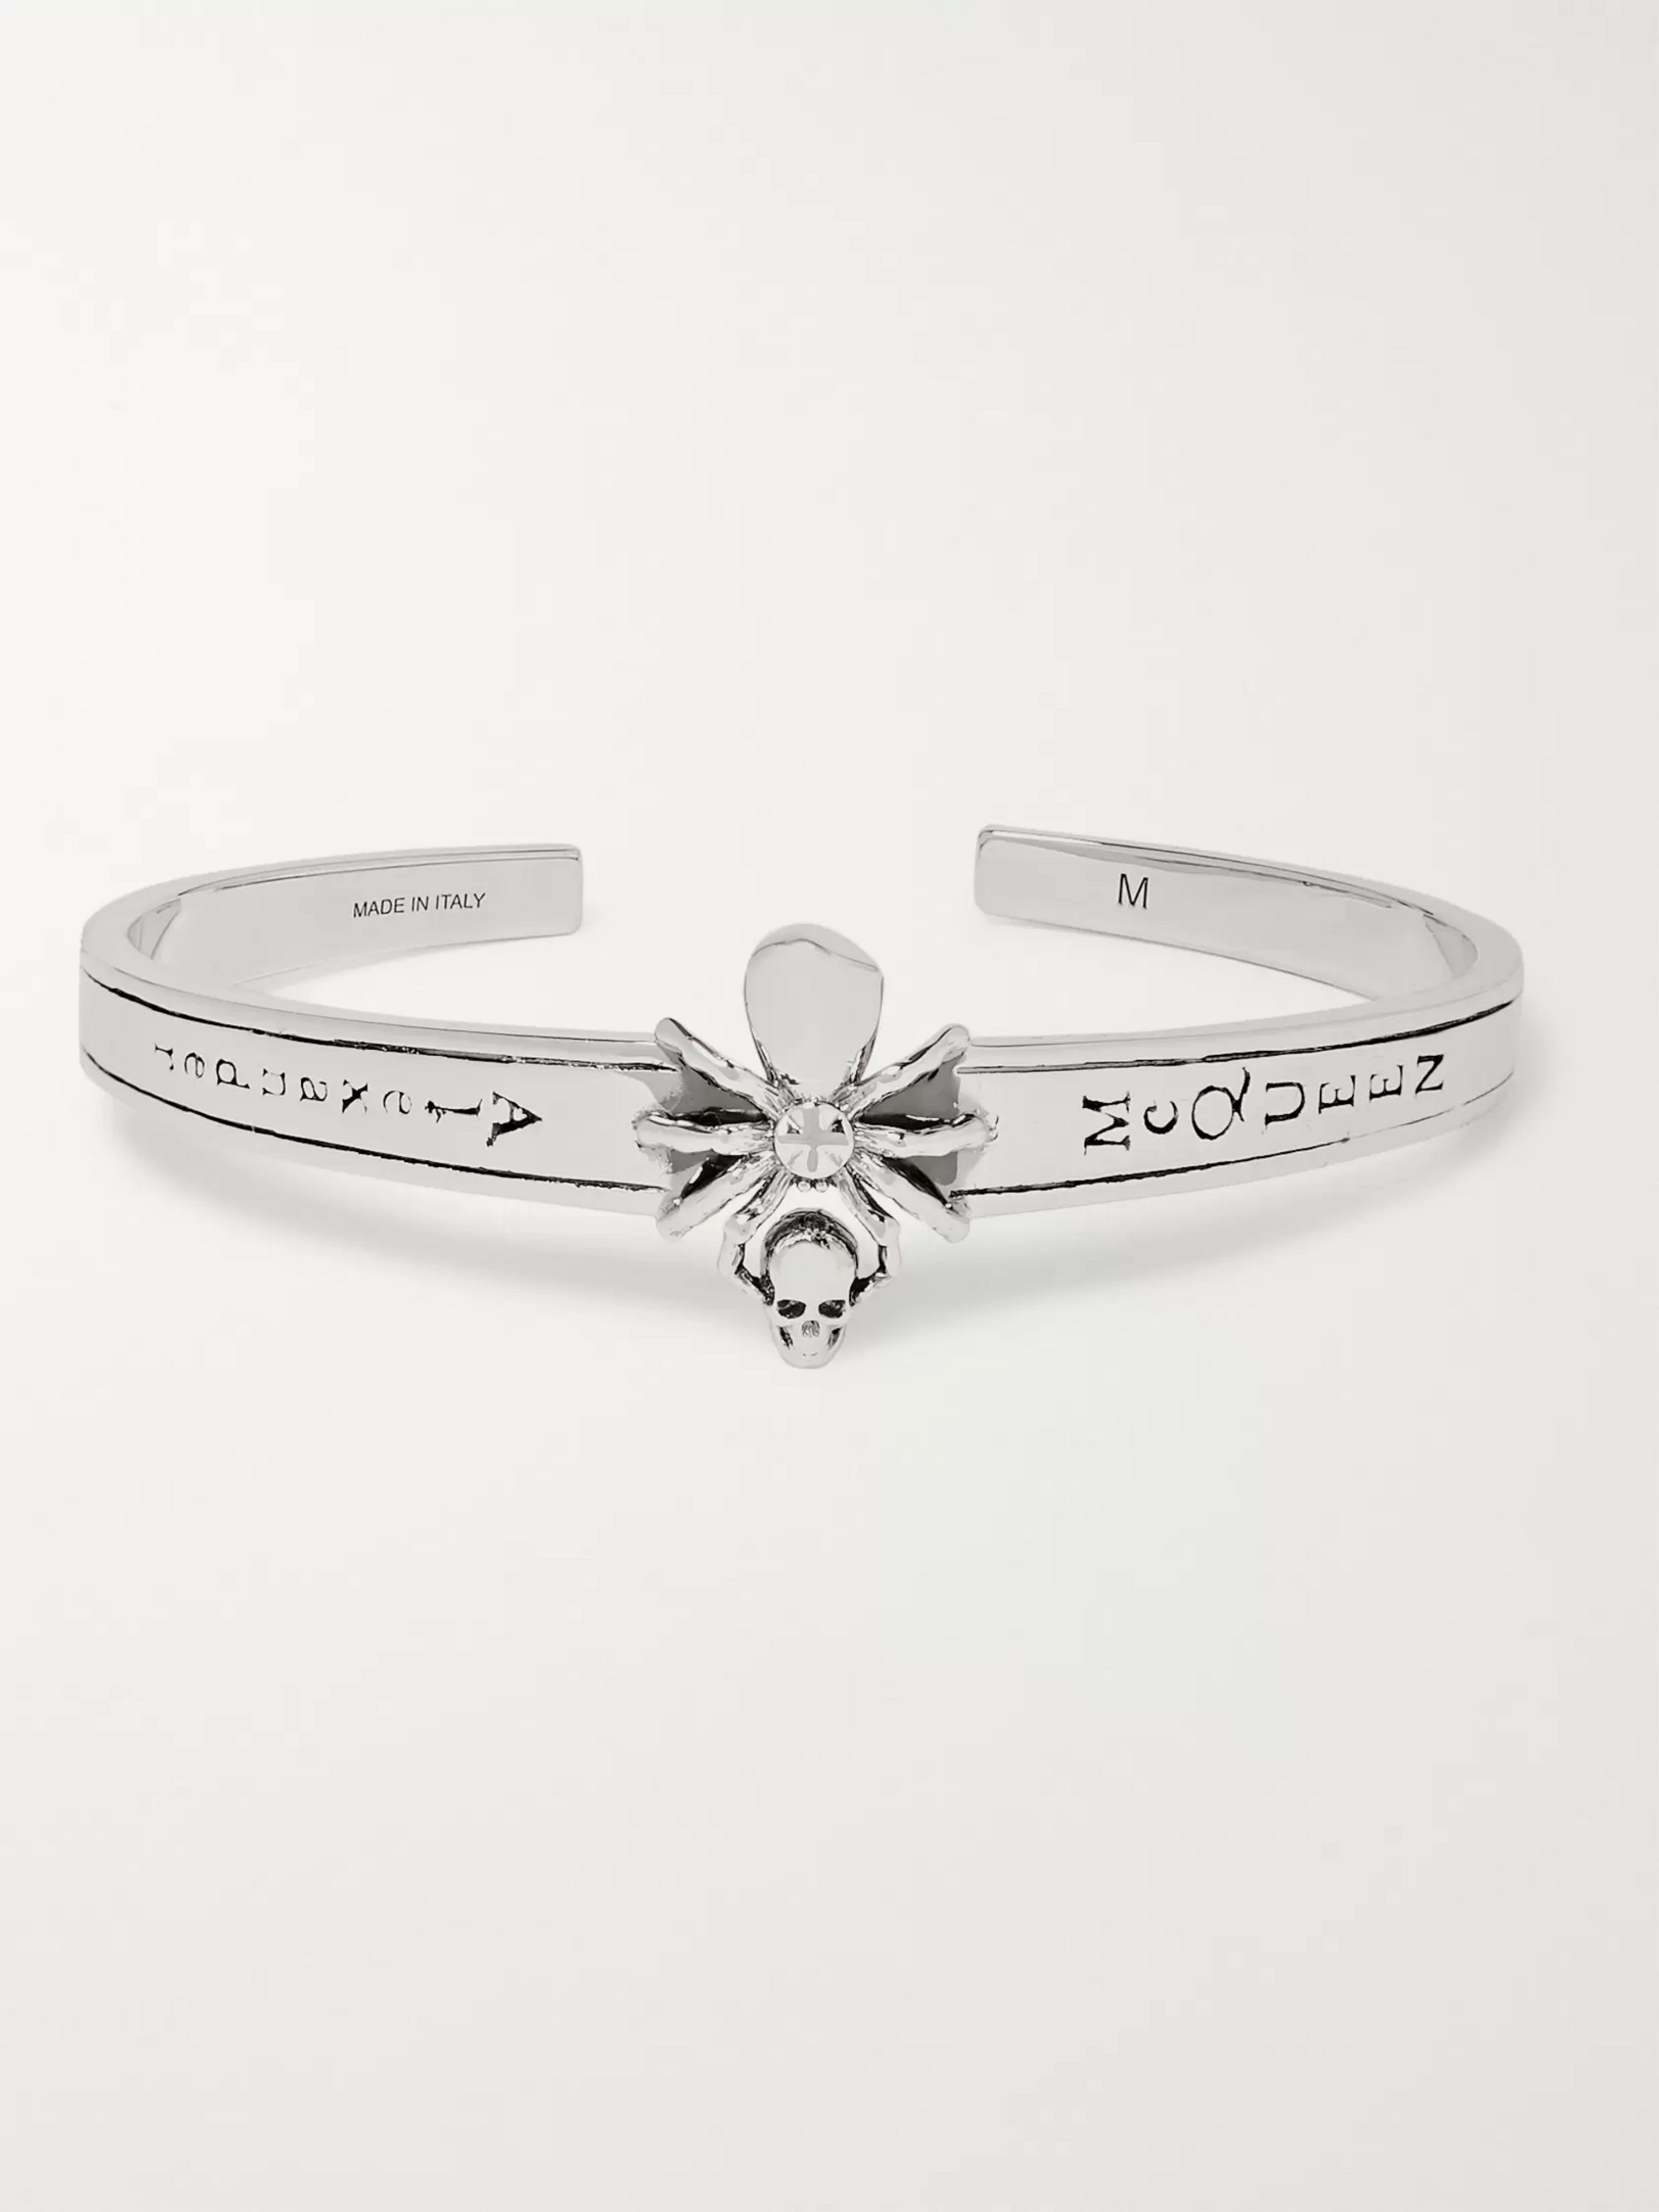 Alexander McQueen Spider Polished Silver-Tone Cuff